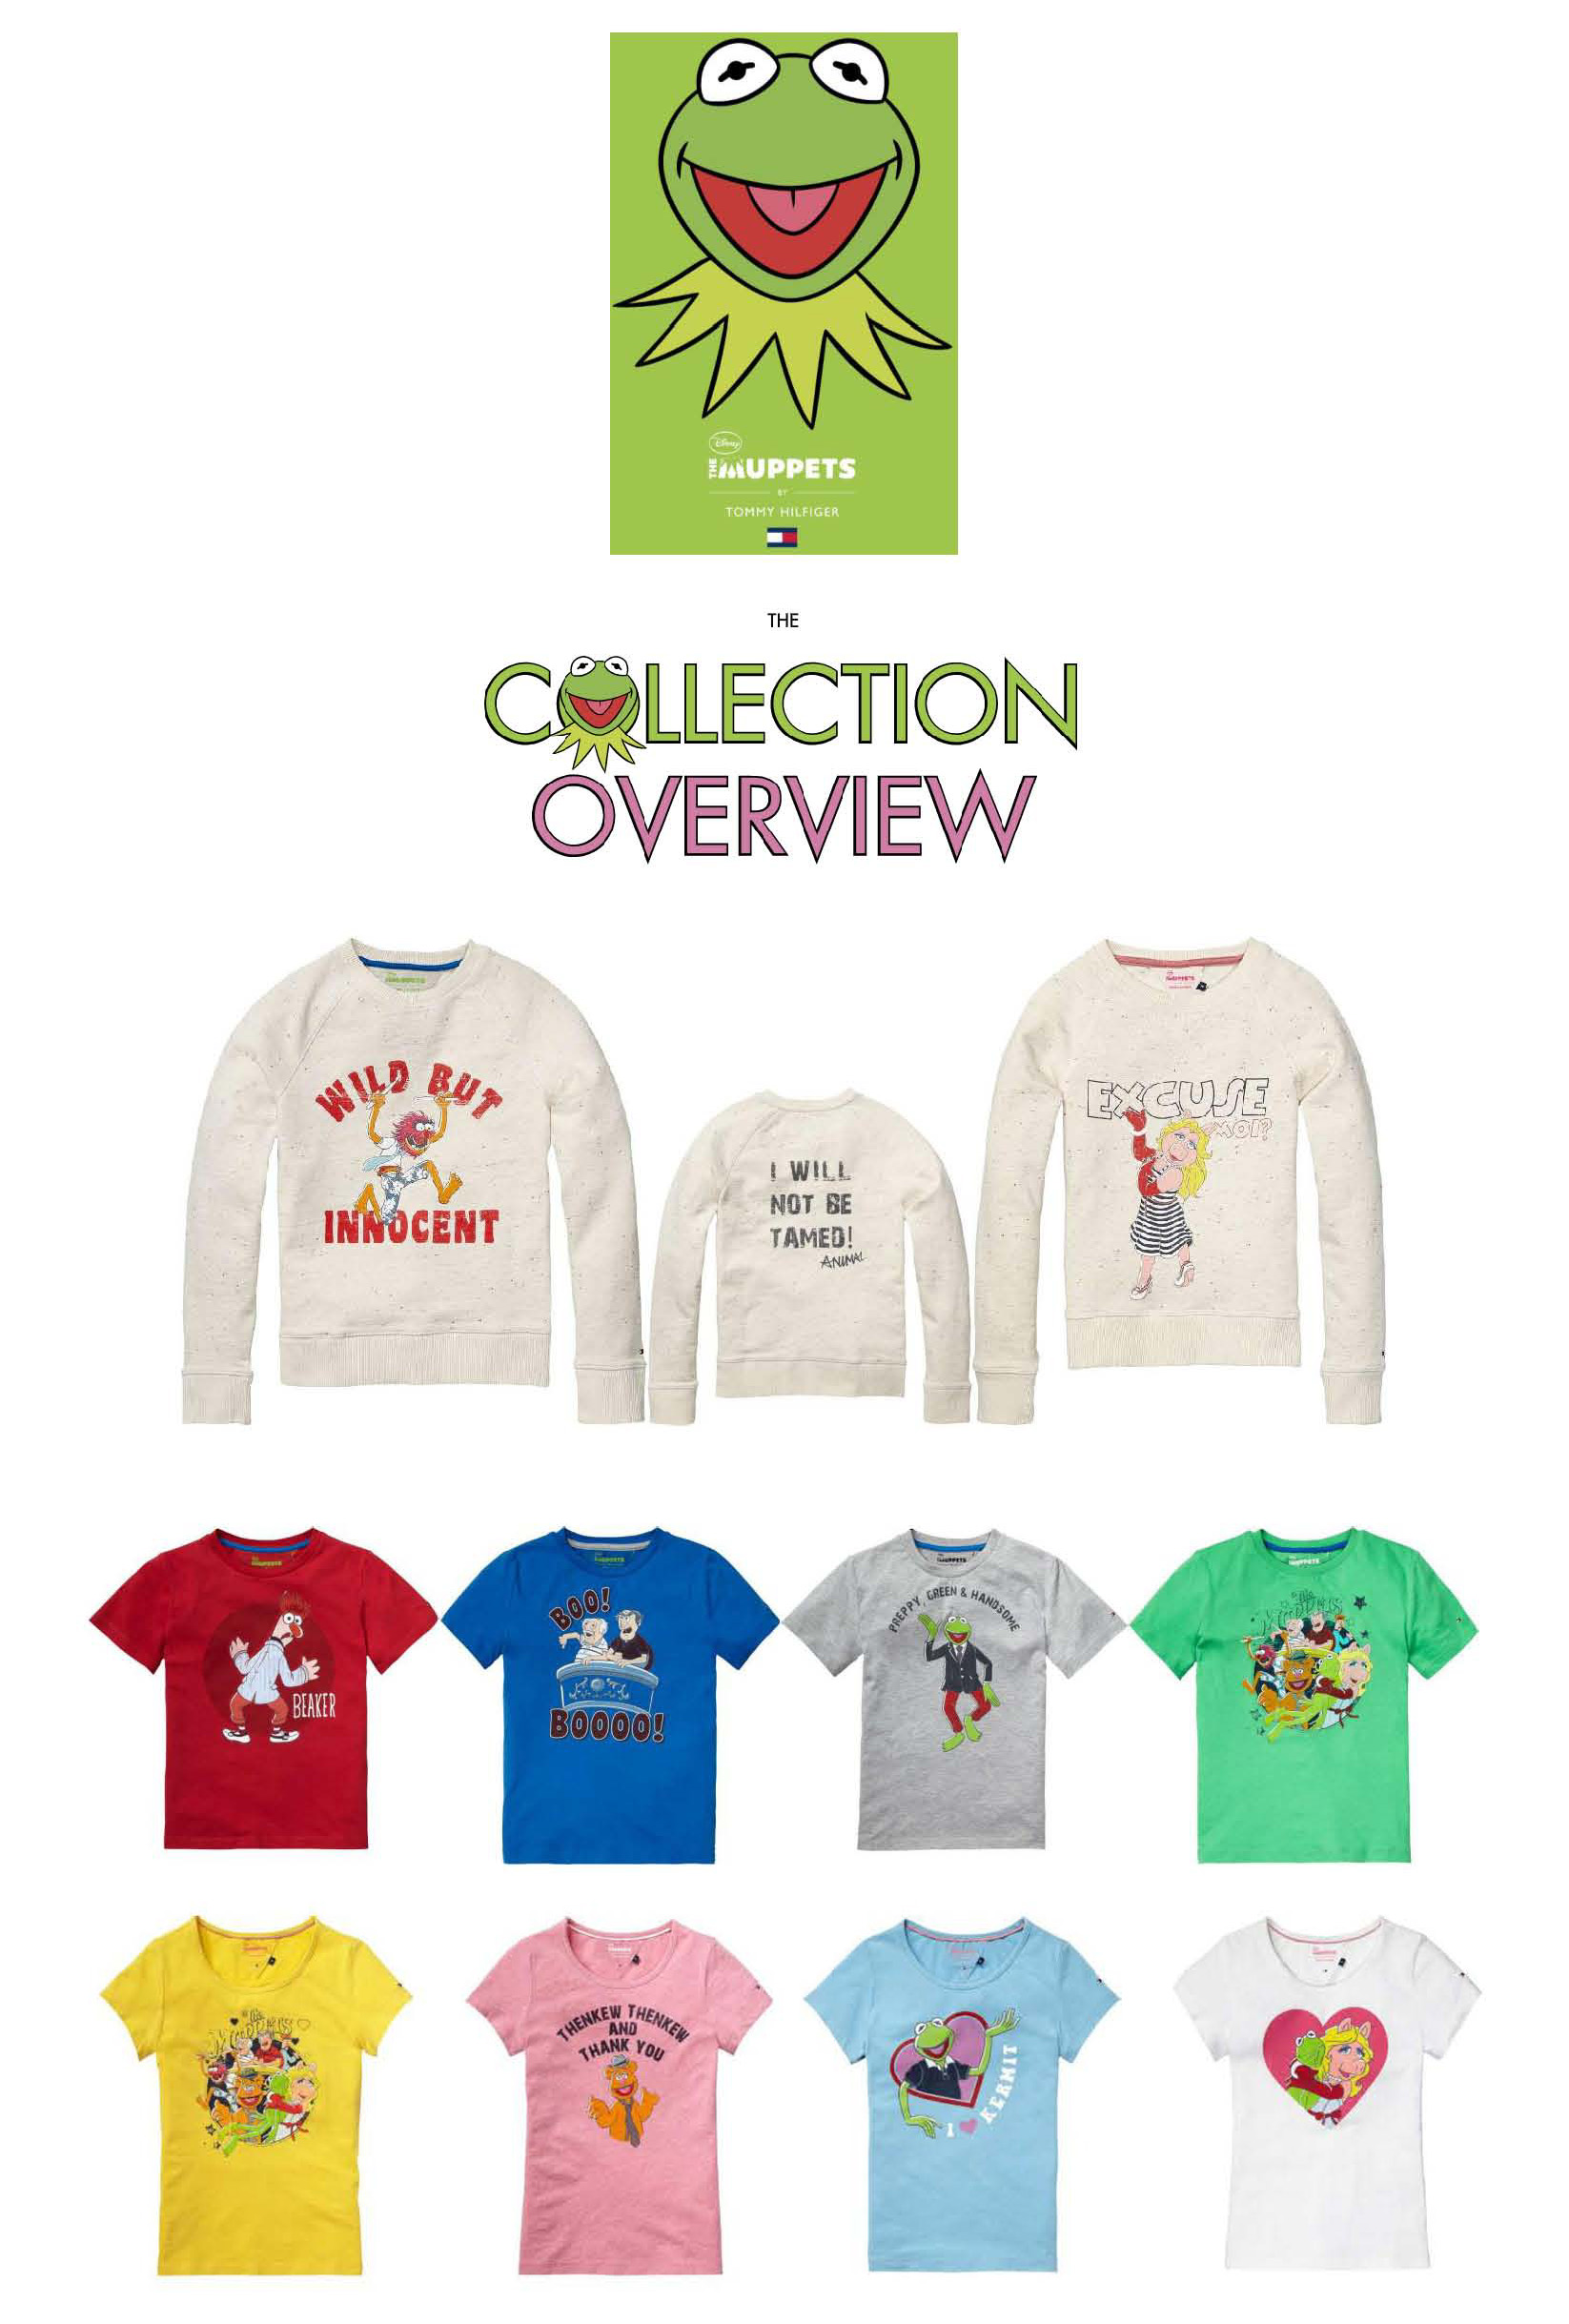 c57b7509 Muppets. Prices between €34.90 and €64.90. Now available on Tommy.com or in  store